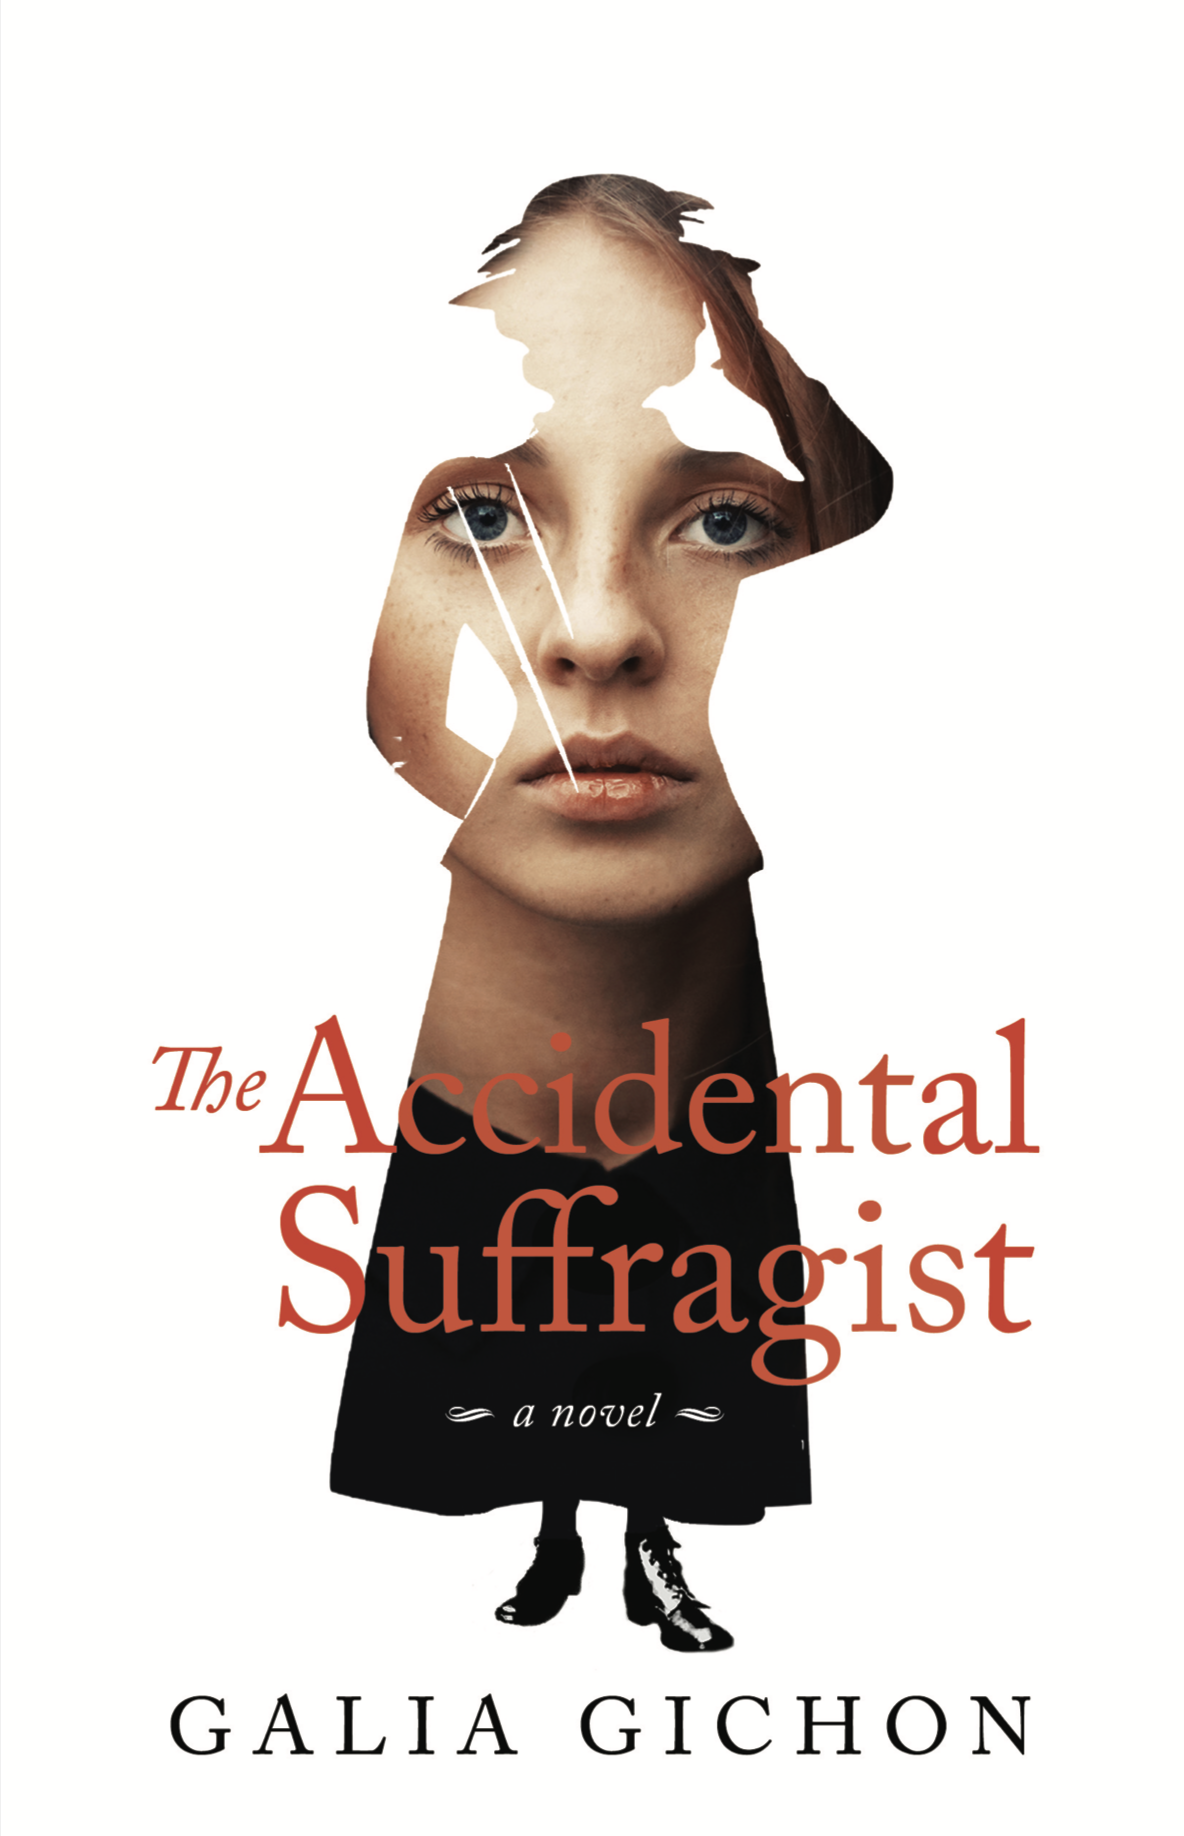 The Accidental Suffragist book cover of woman's outline with woman's face filling outline